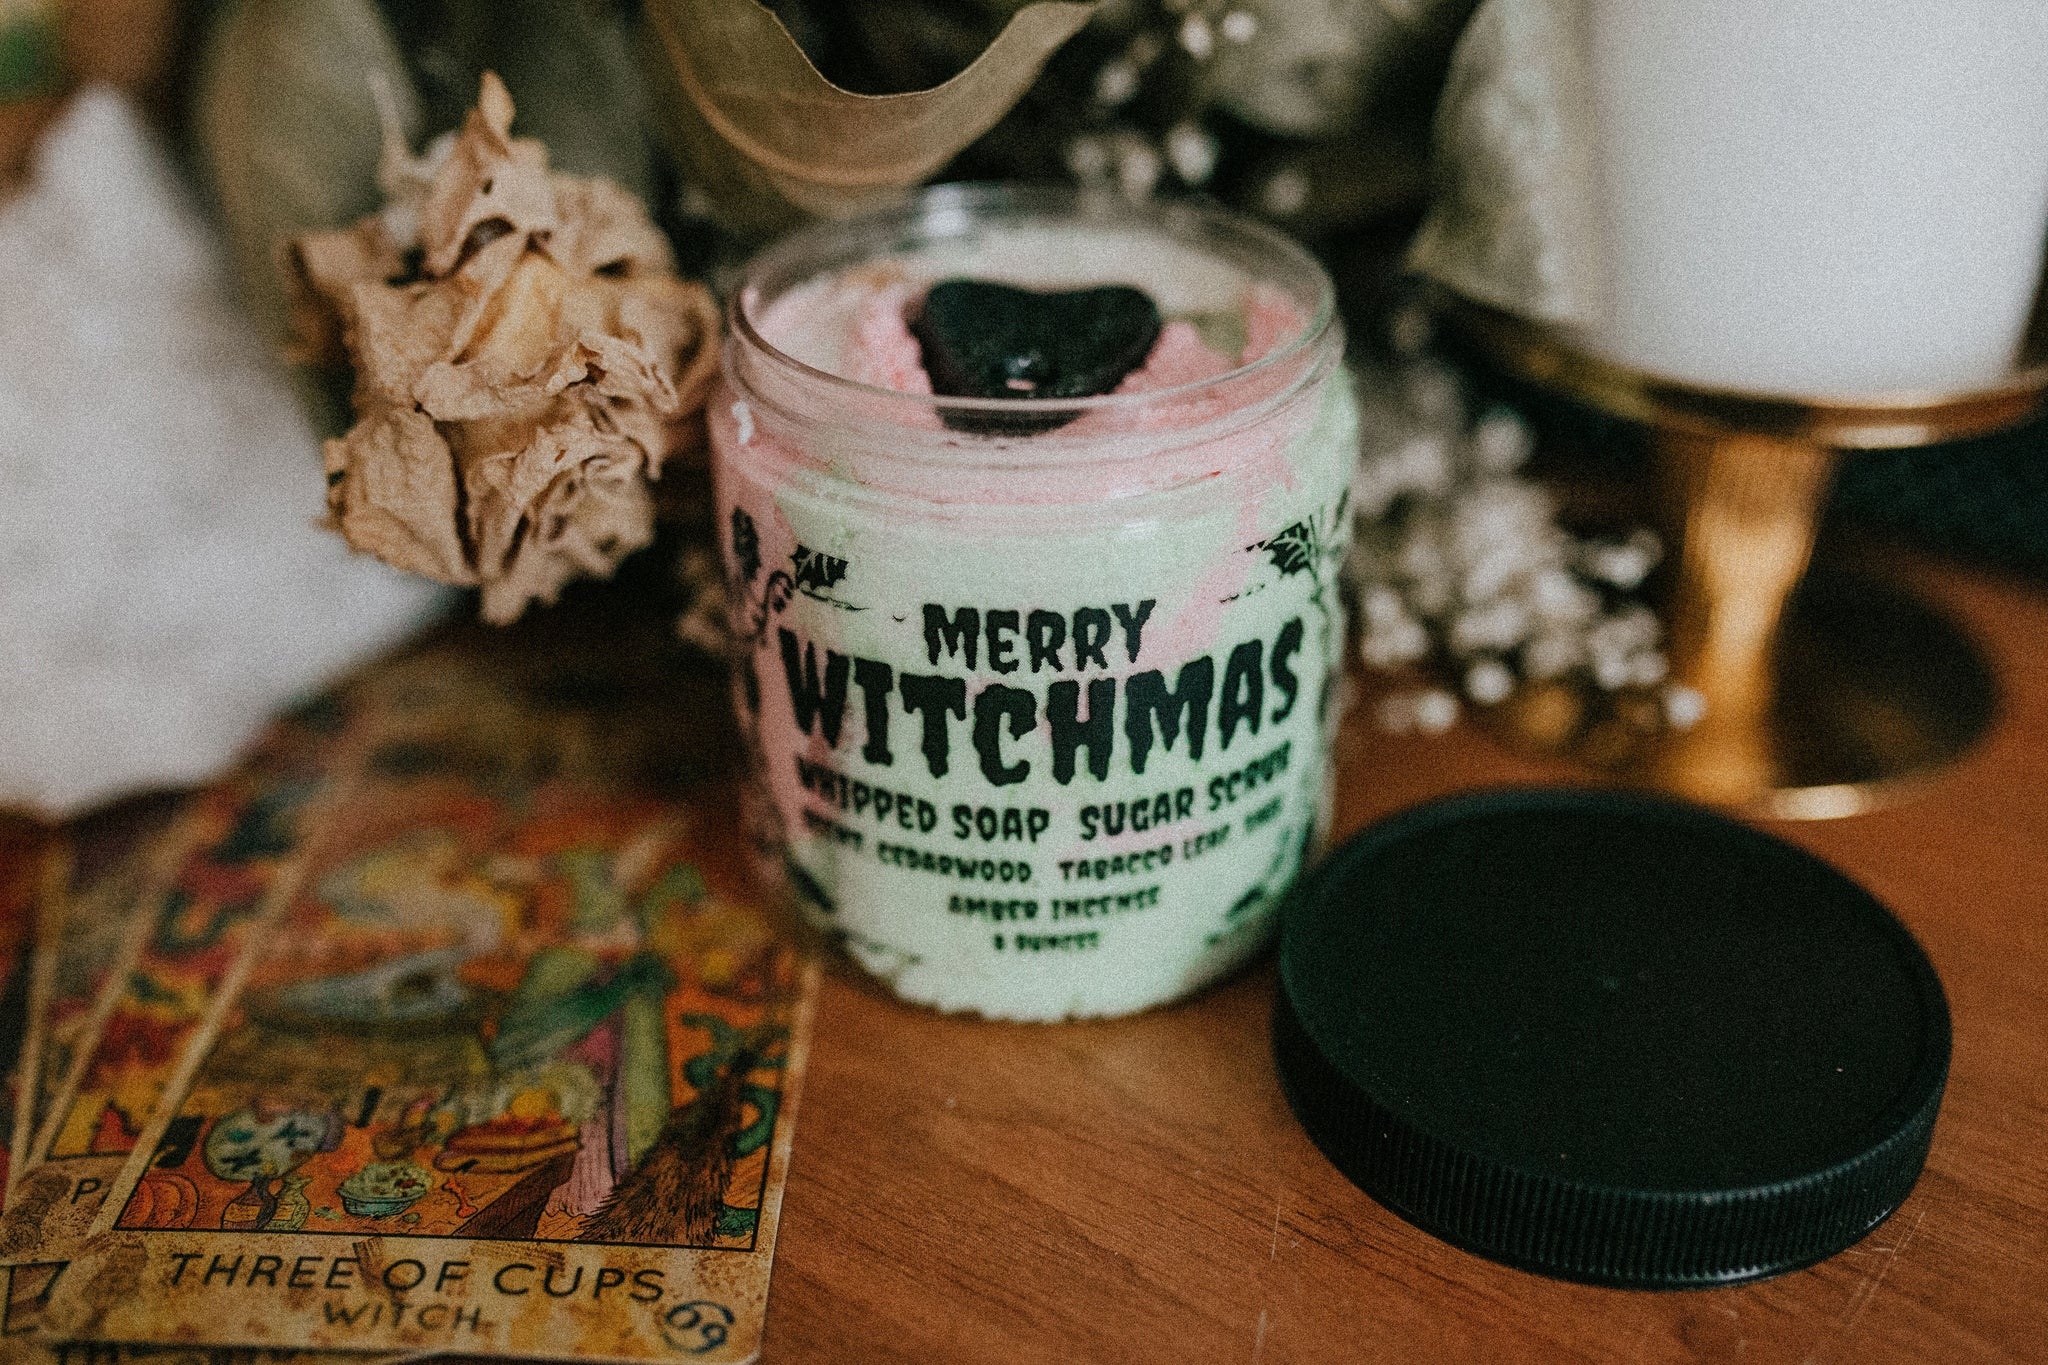 Merry Witchmas whipped soap sugar scrub